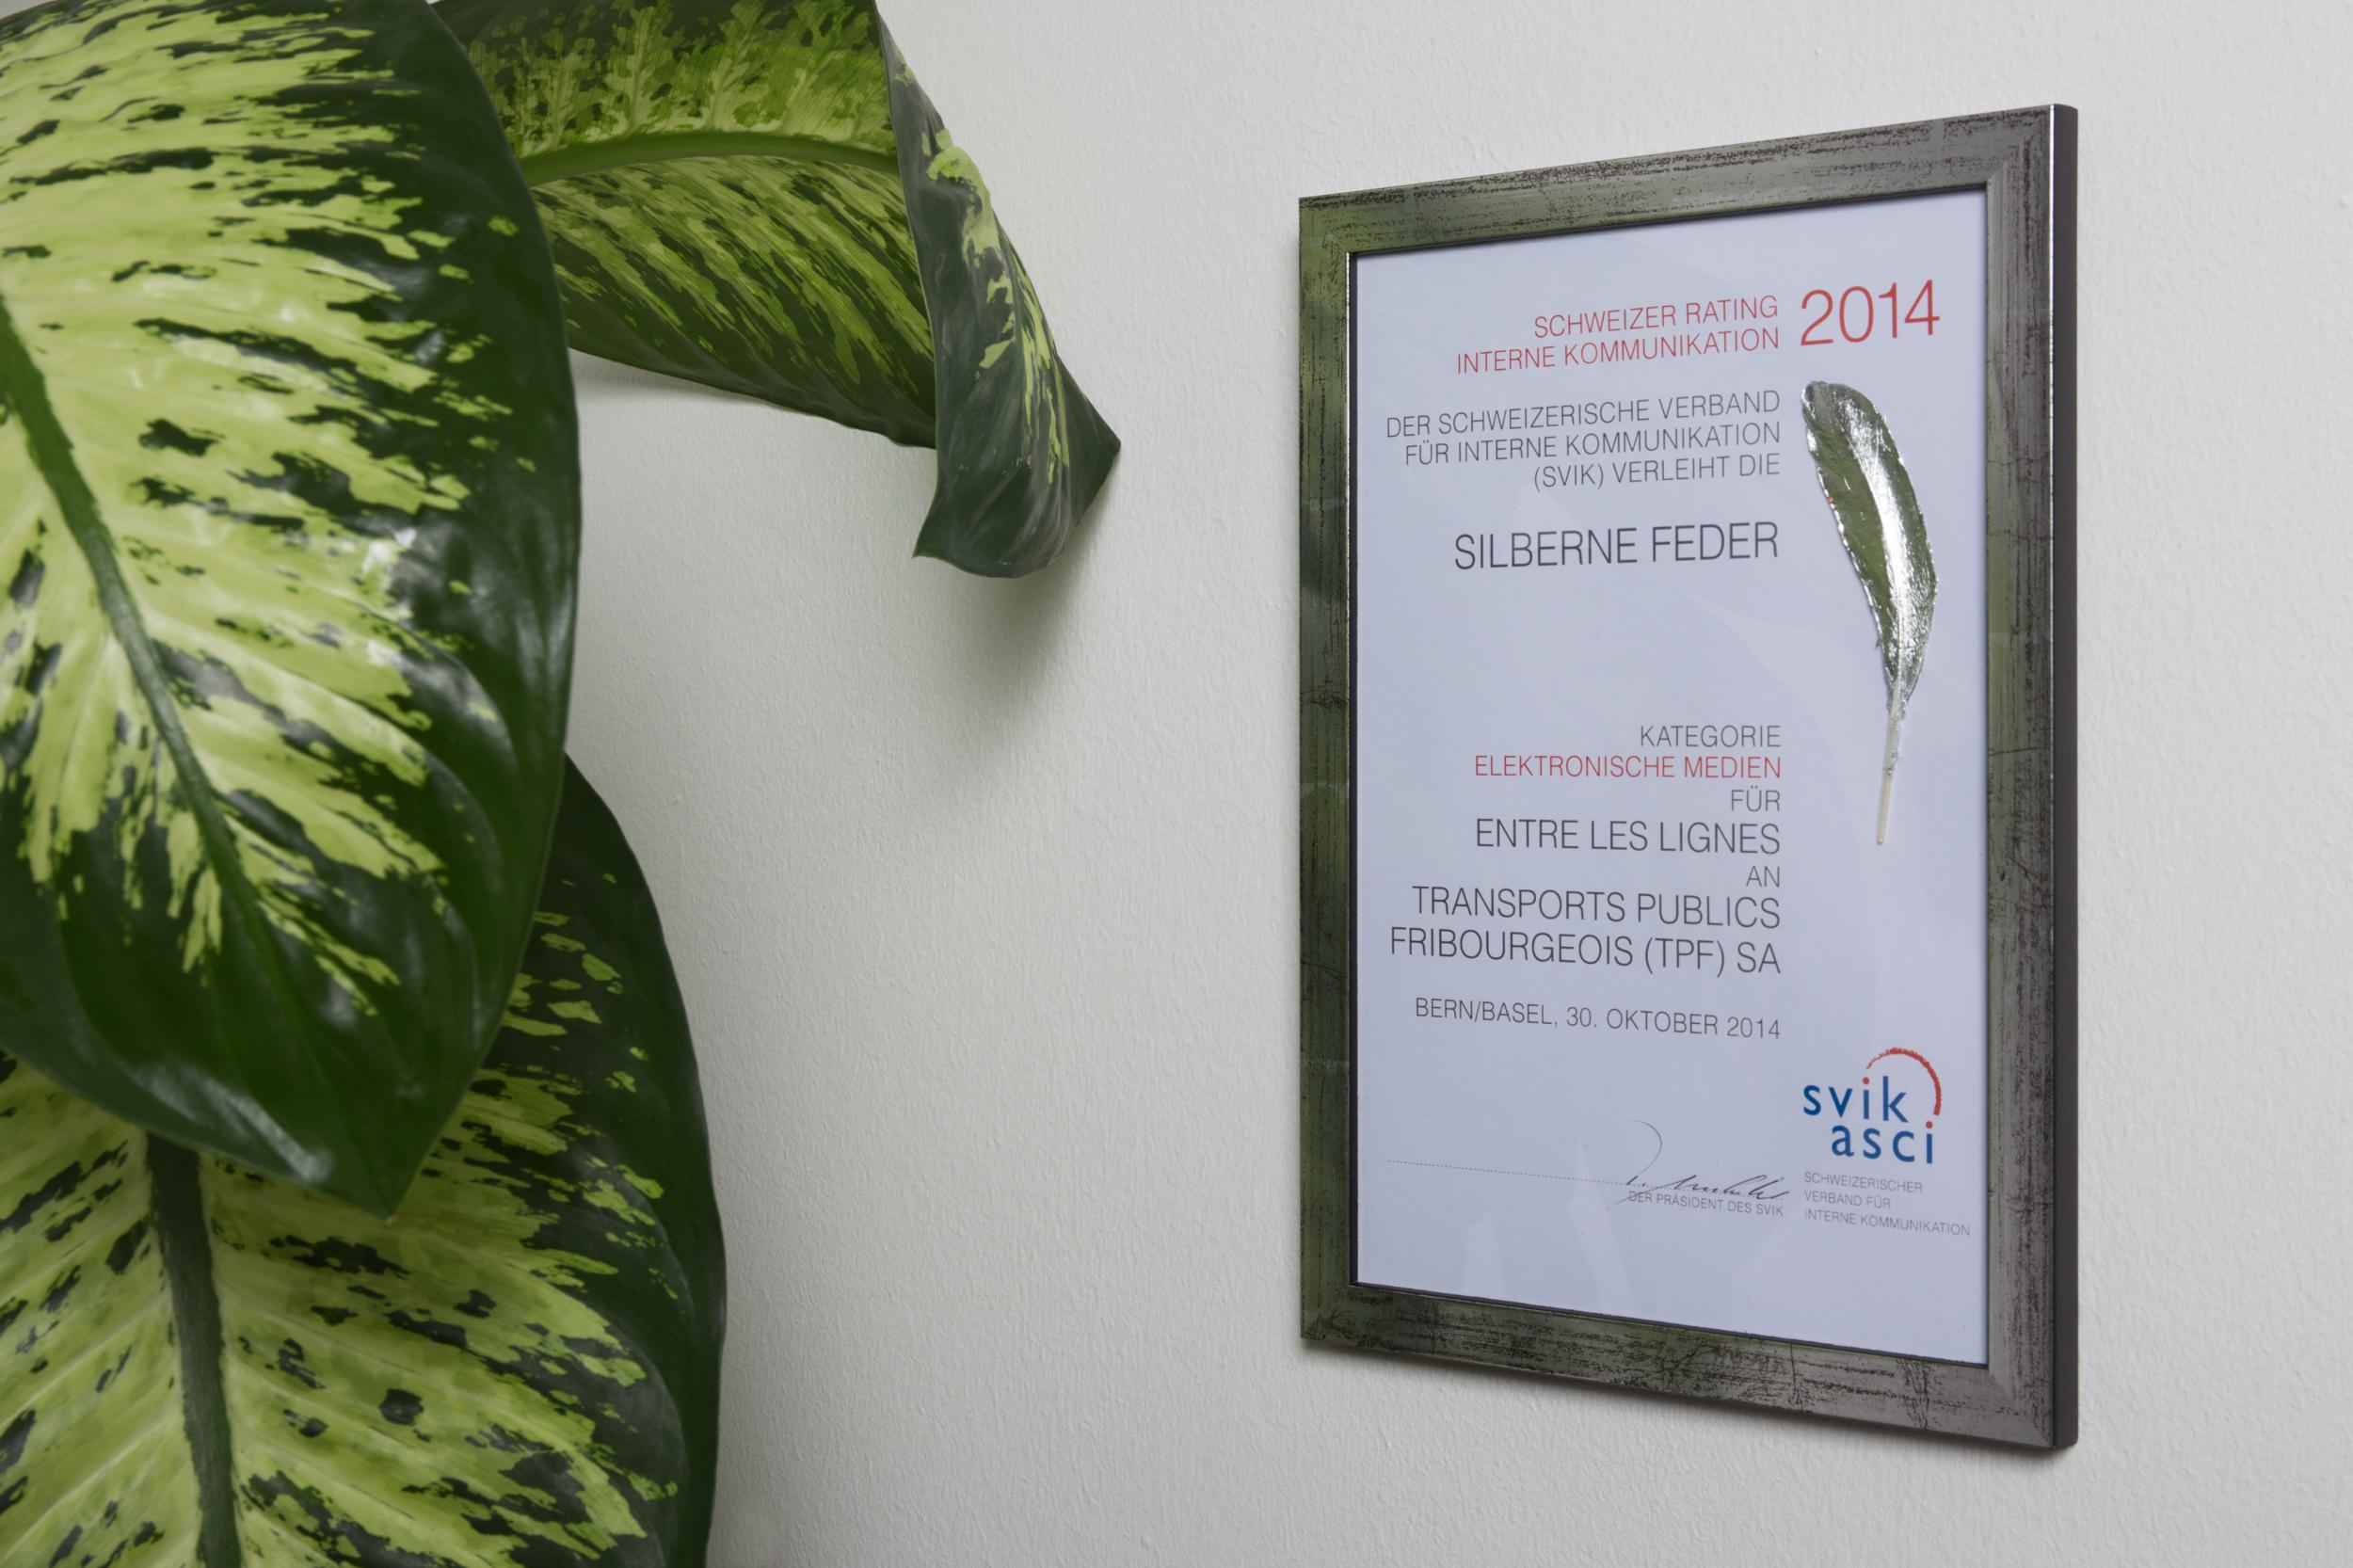 Frank R - Plume d'argent aux Swiss Communication Awards SVIK 2014